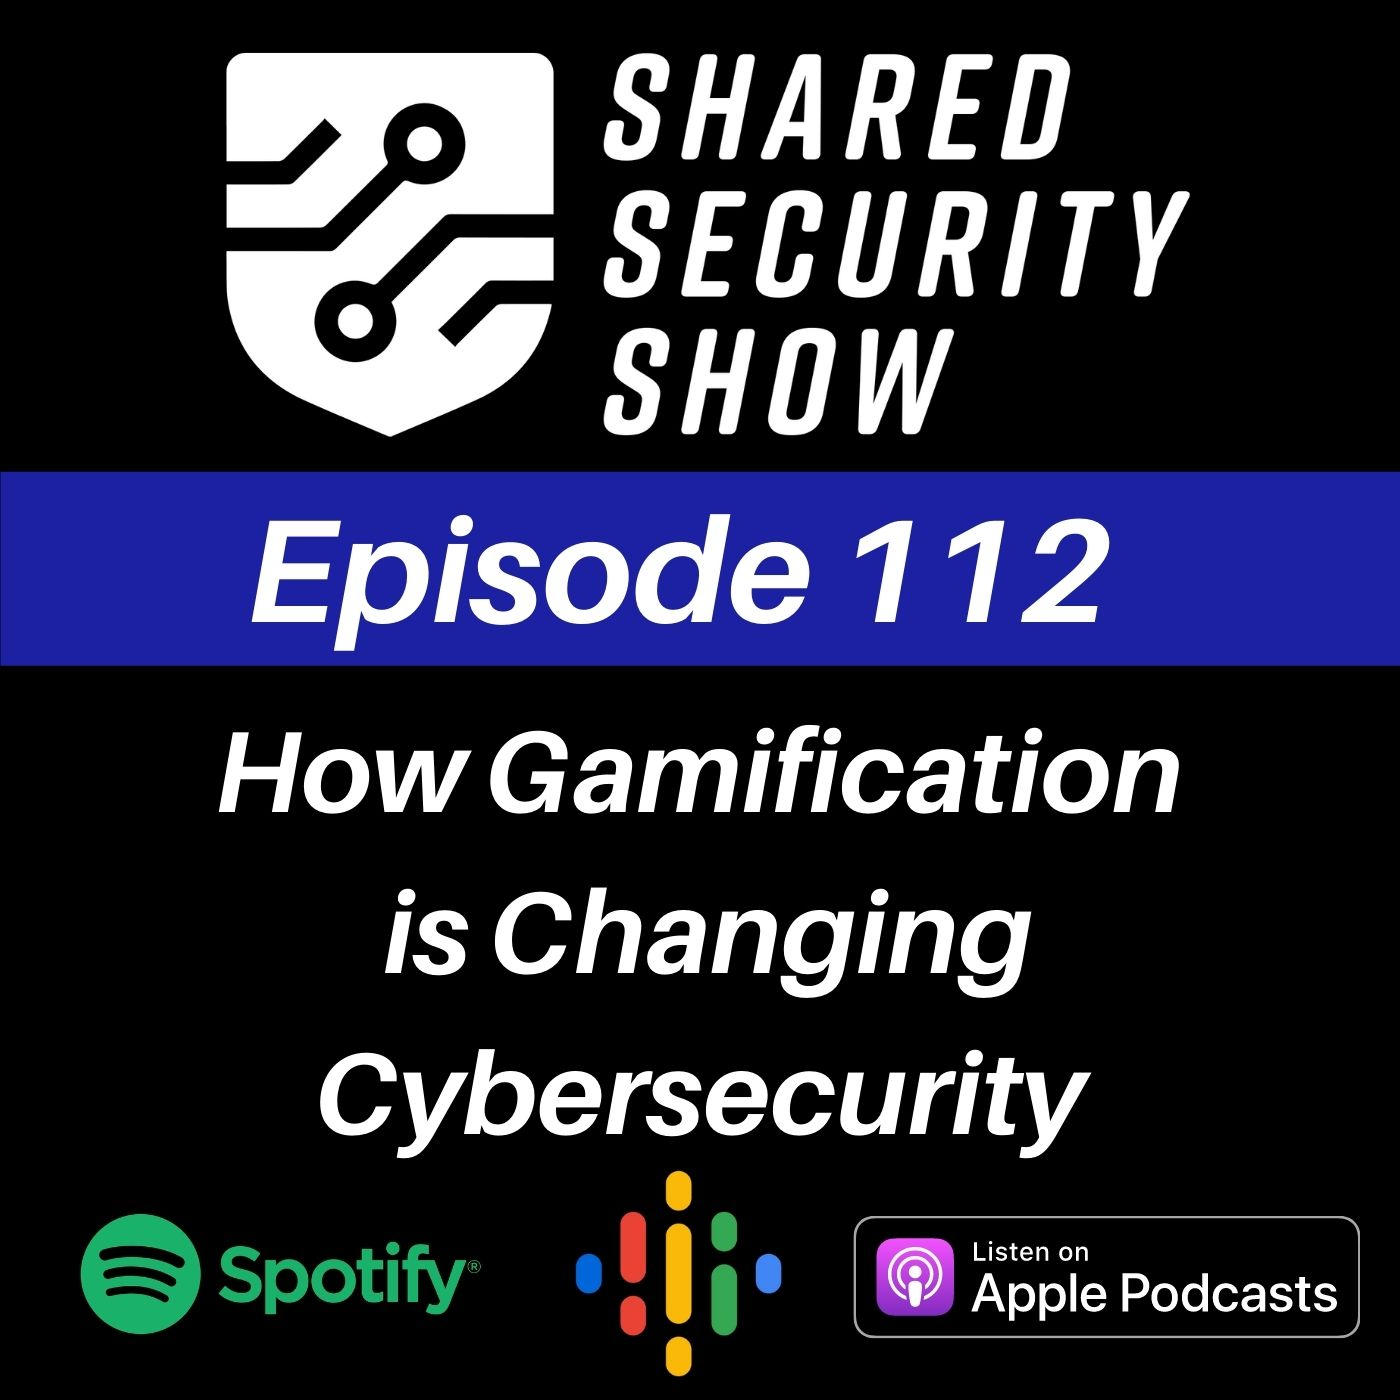 How Gamification is Changing Cybersecurity